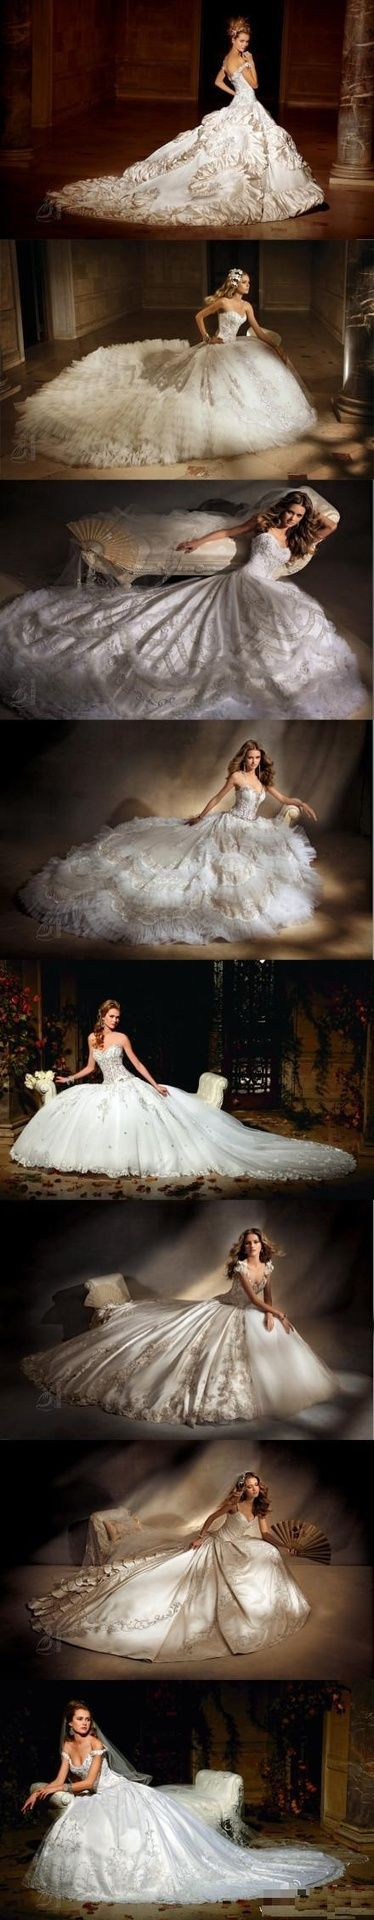 Eve of Milady Wedding Dresses Collection Eve of Milady Wedding …collection available at Sposa Mia Couture.  www.sposamia.com